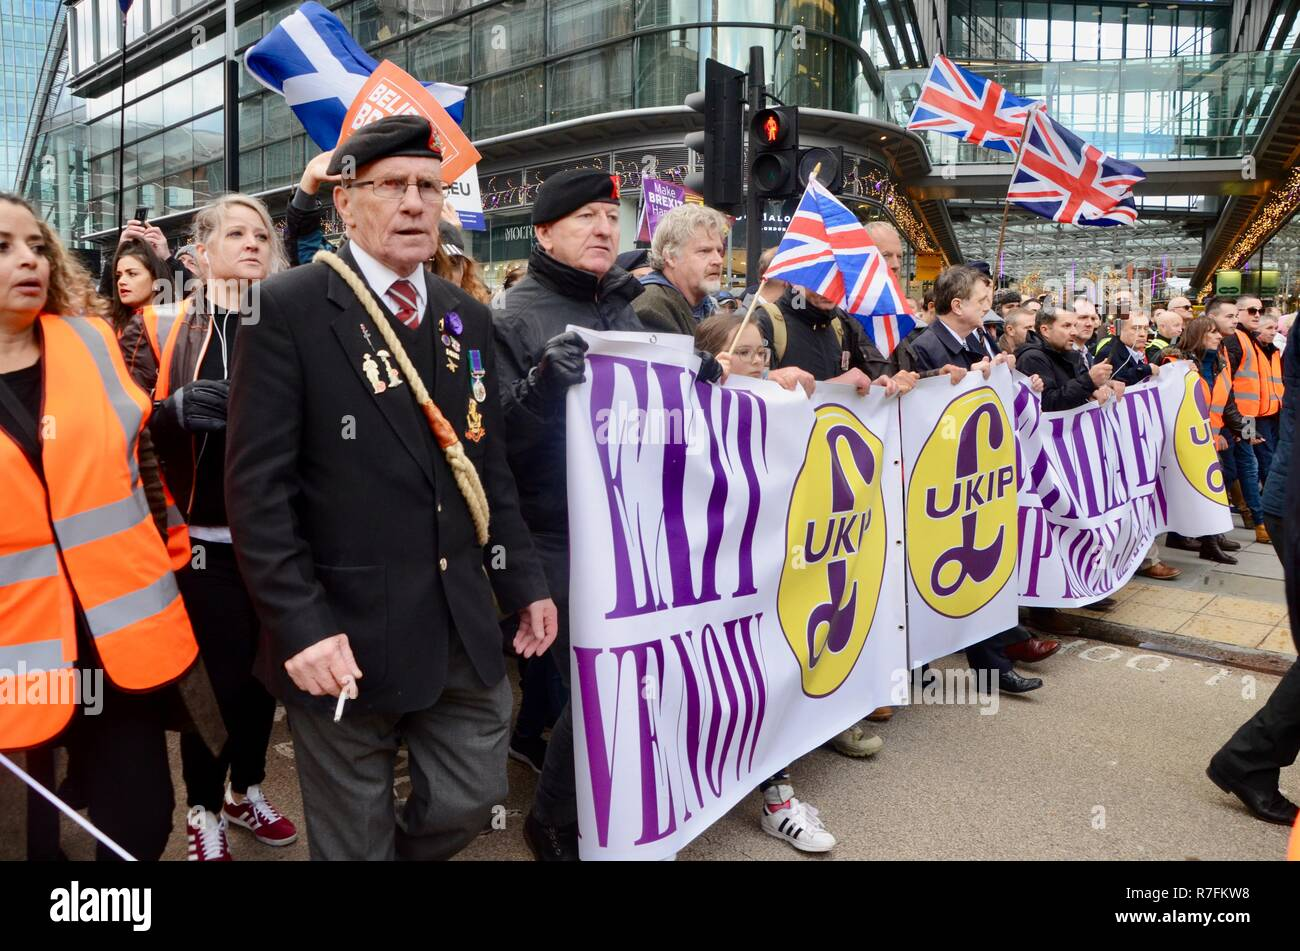 Brexit betrayal UKIP march with tommy robinson in central london 9th december 2018 - Stock Image